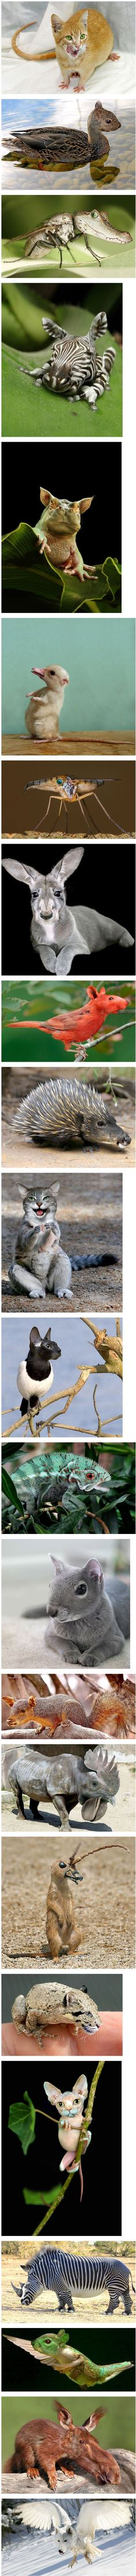 Photoshop Animals - Okay, this is so weird! Animals And Pets, Baby Animals, Funny Animals, Cute Animals, Animal Mashups, Animal Memes, Funny Animal Pictures, Funny Photos, Photoshopped Animals